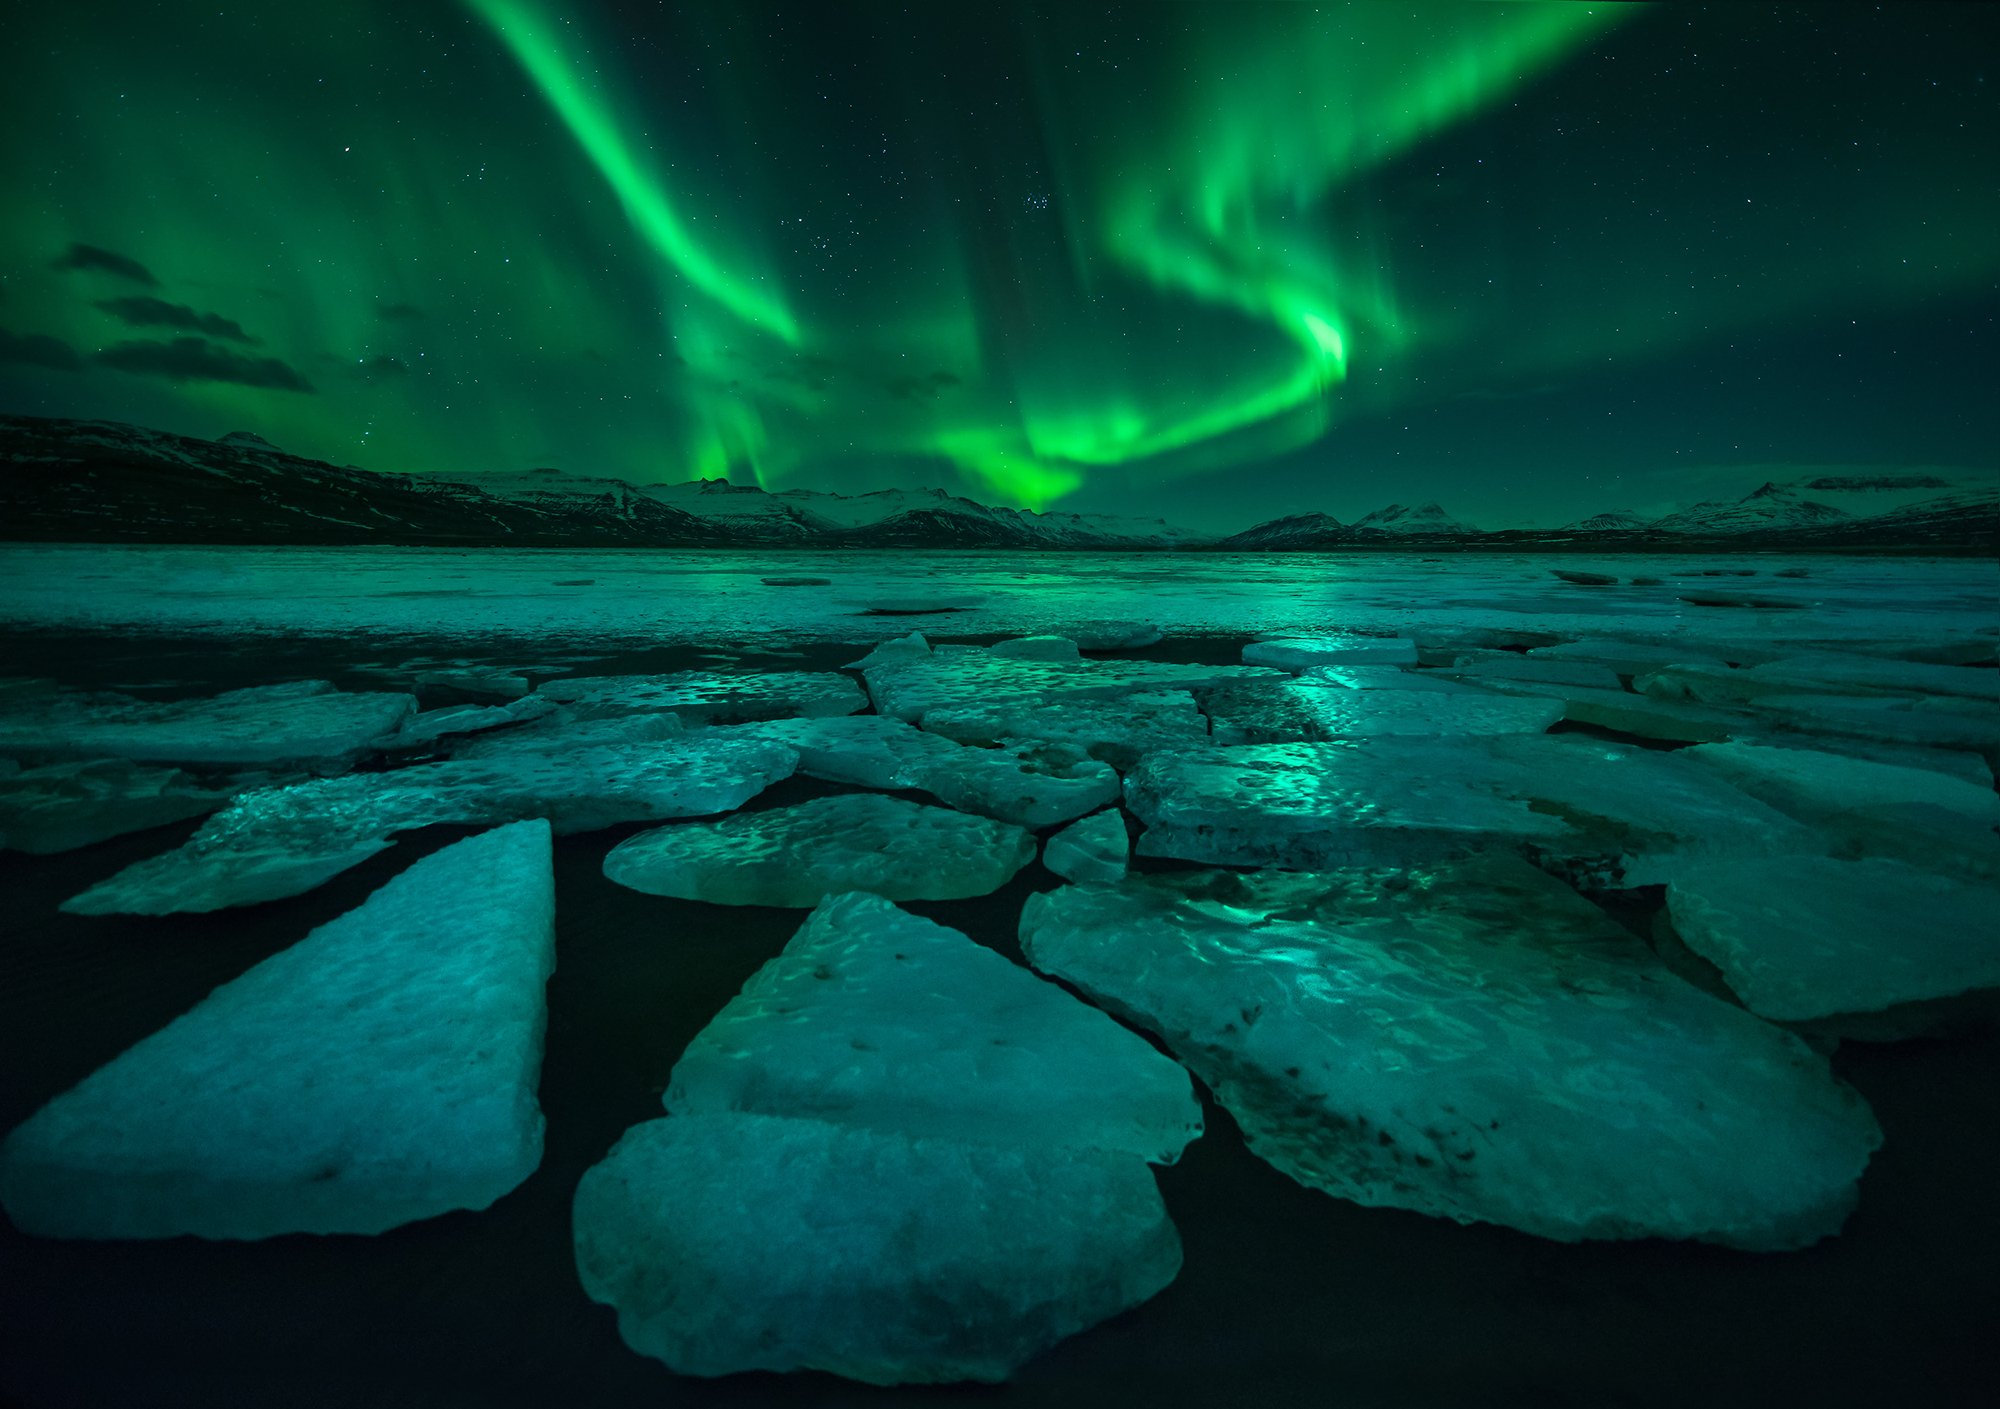 2015, Astronomy, Atmospheric Mood, Aurora Borealis, Beauty In Nature, Cloud - Sky, Color Image, Dramatic Sky, Flowing Water, Horizontal, Iceland, Illuminated, Mountain, Mountain Range, Nature, Night, No People, Outdoors, Photography, Rock - Object, Water,, sarawut intarob